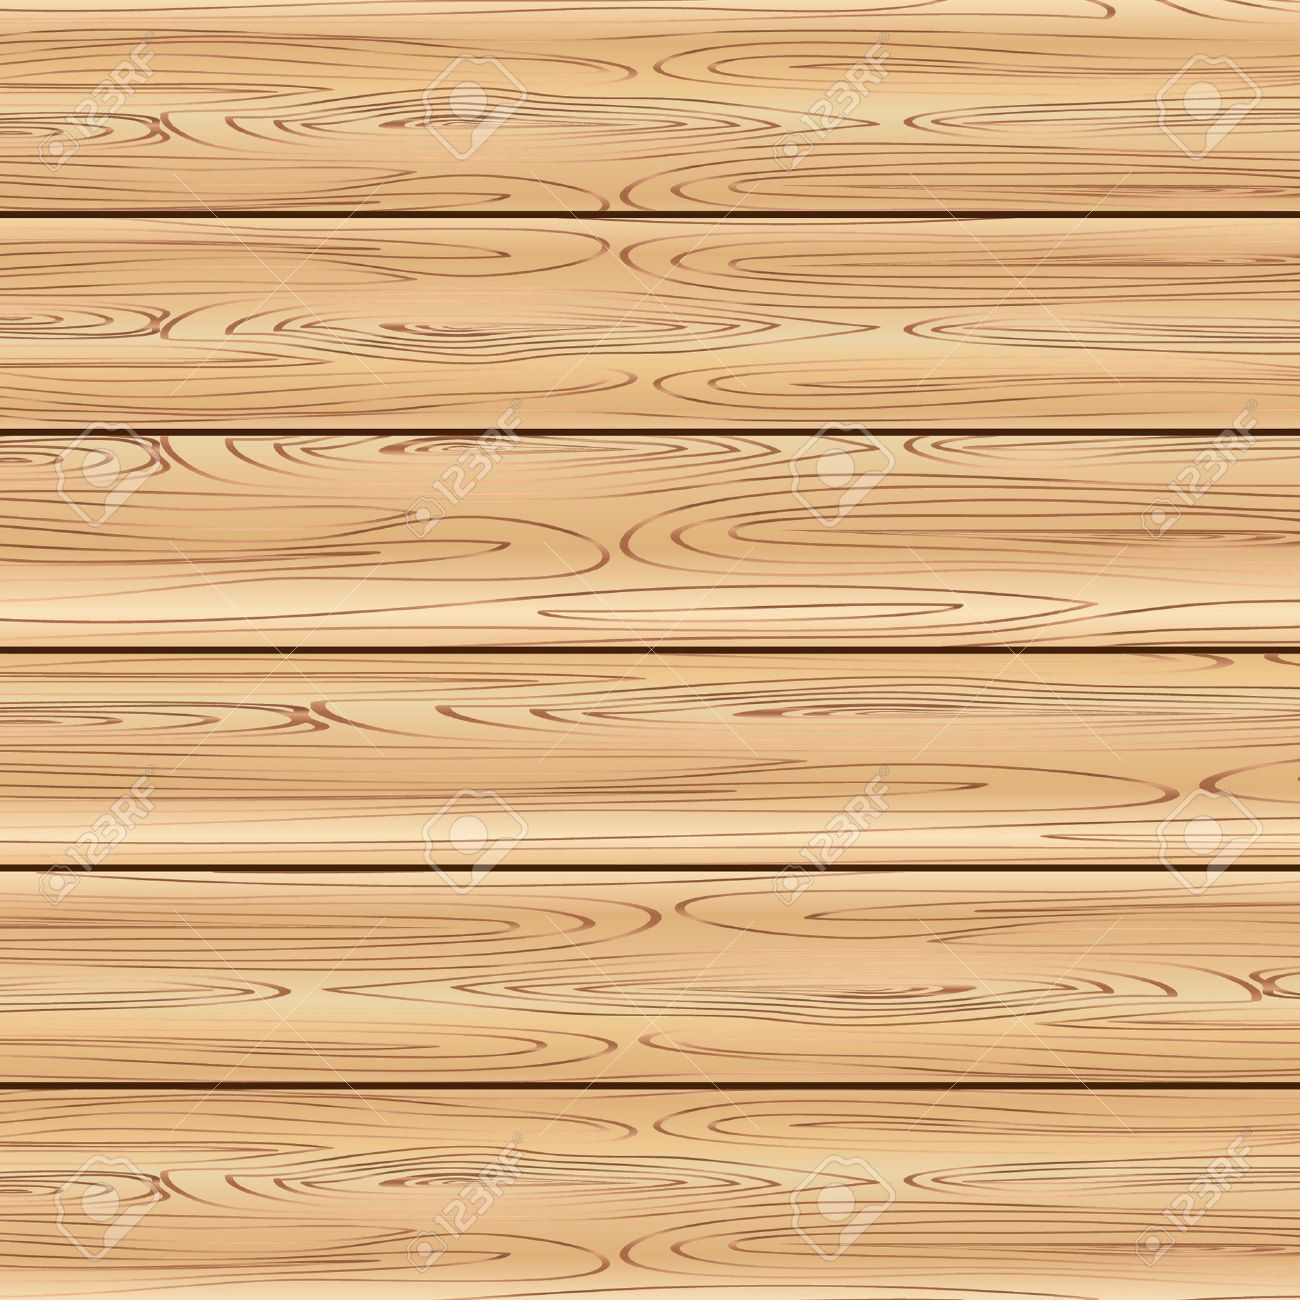 Timber clipart wood background Wood paneling clipart paneling clipart